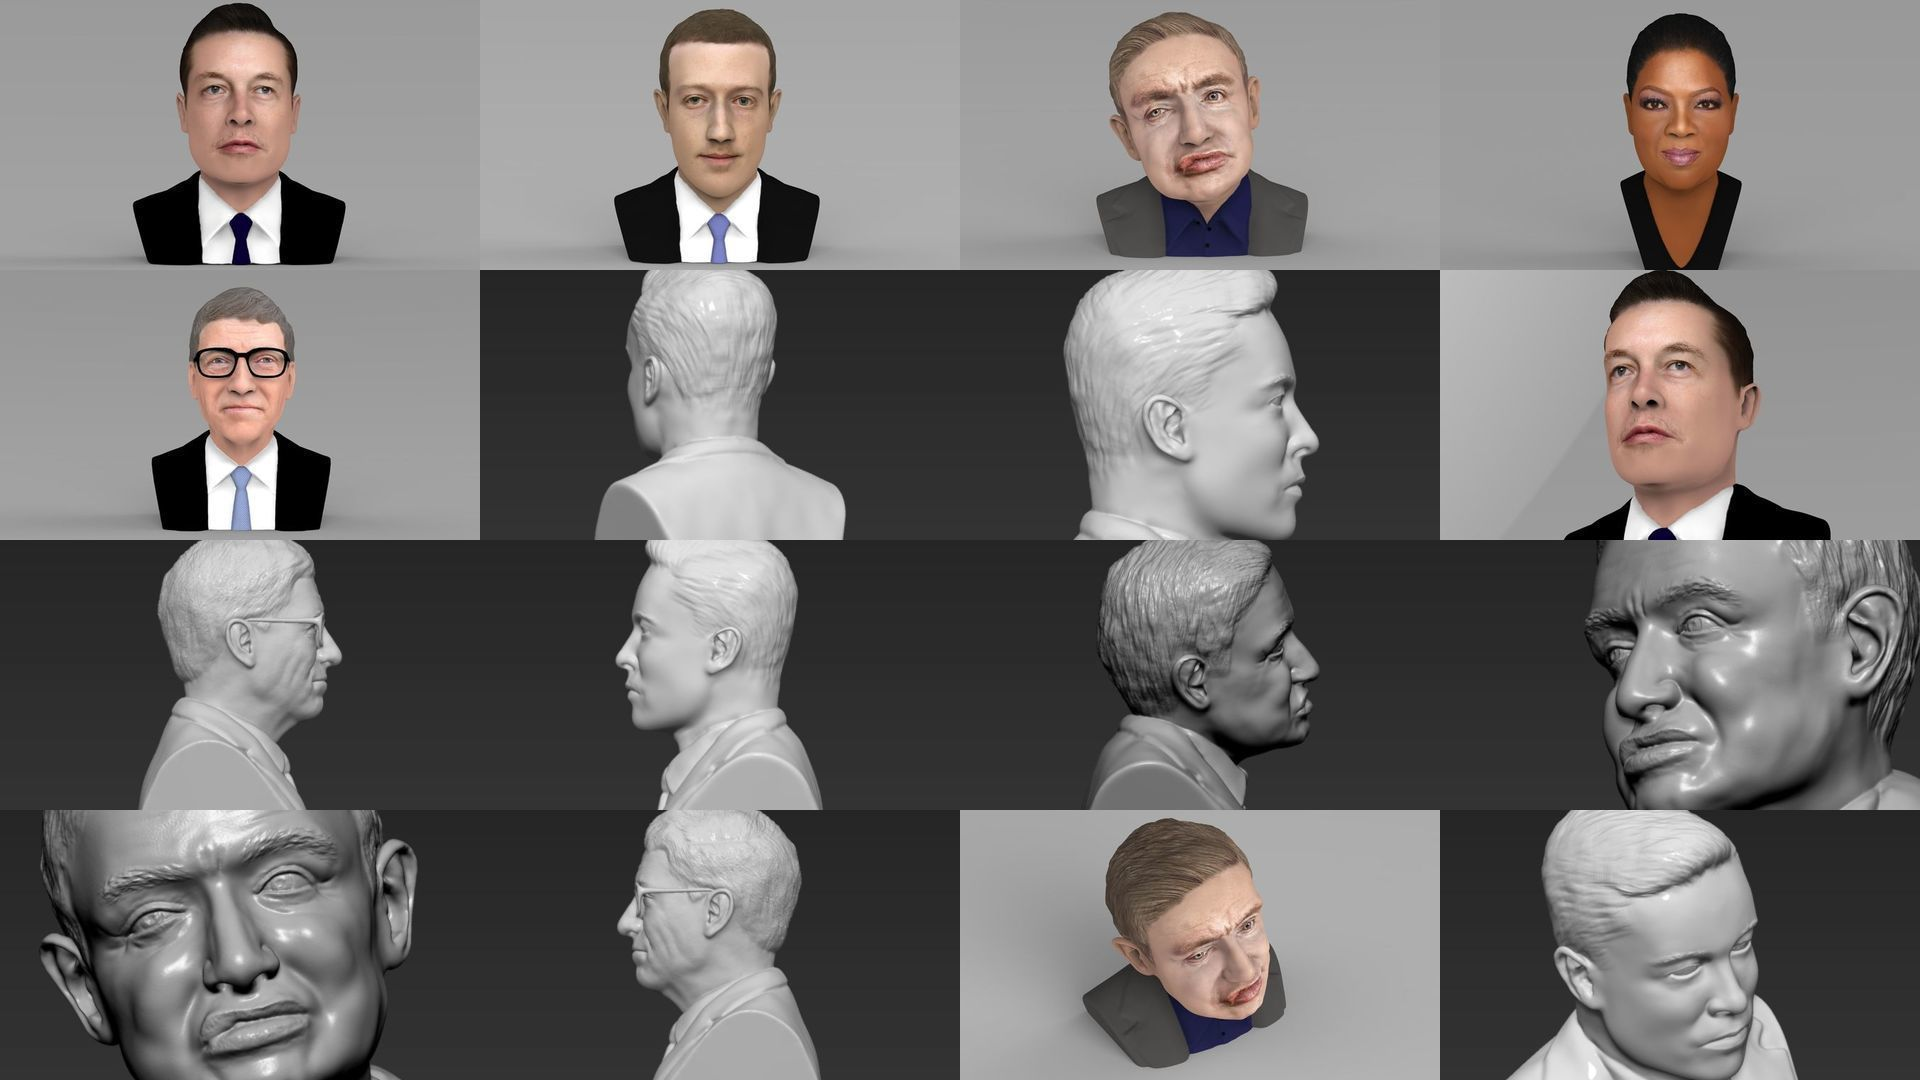 Most Influential People ready for full color 3D printing